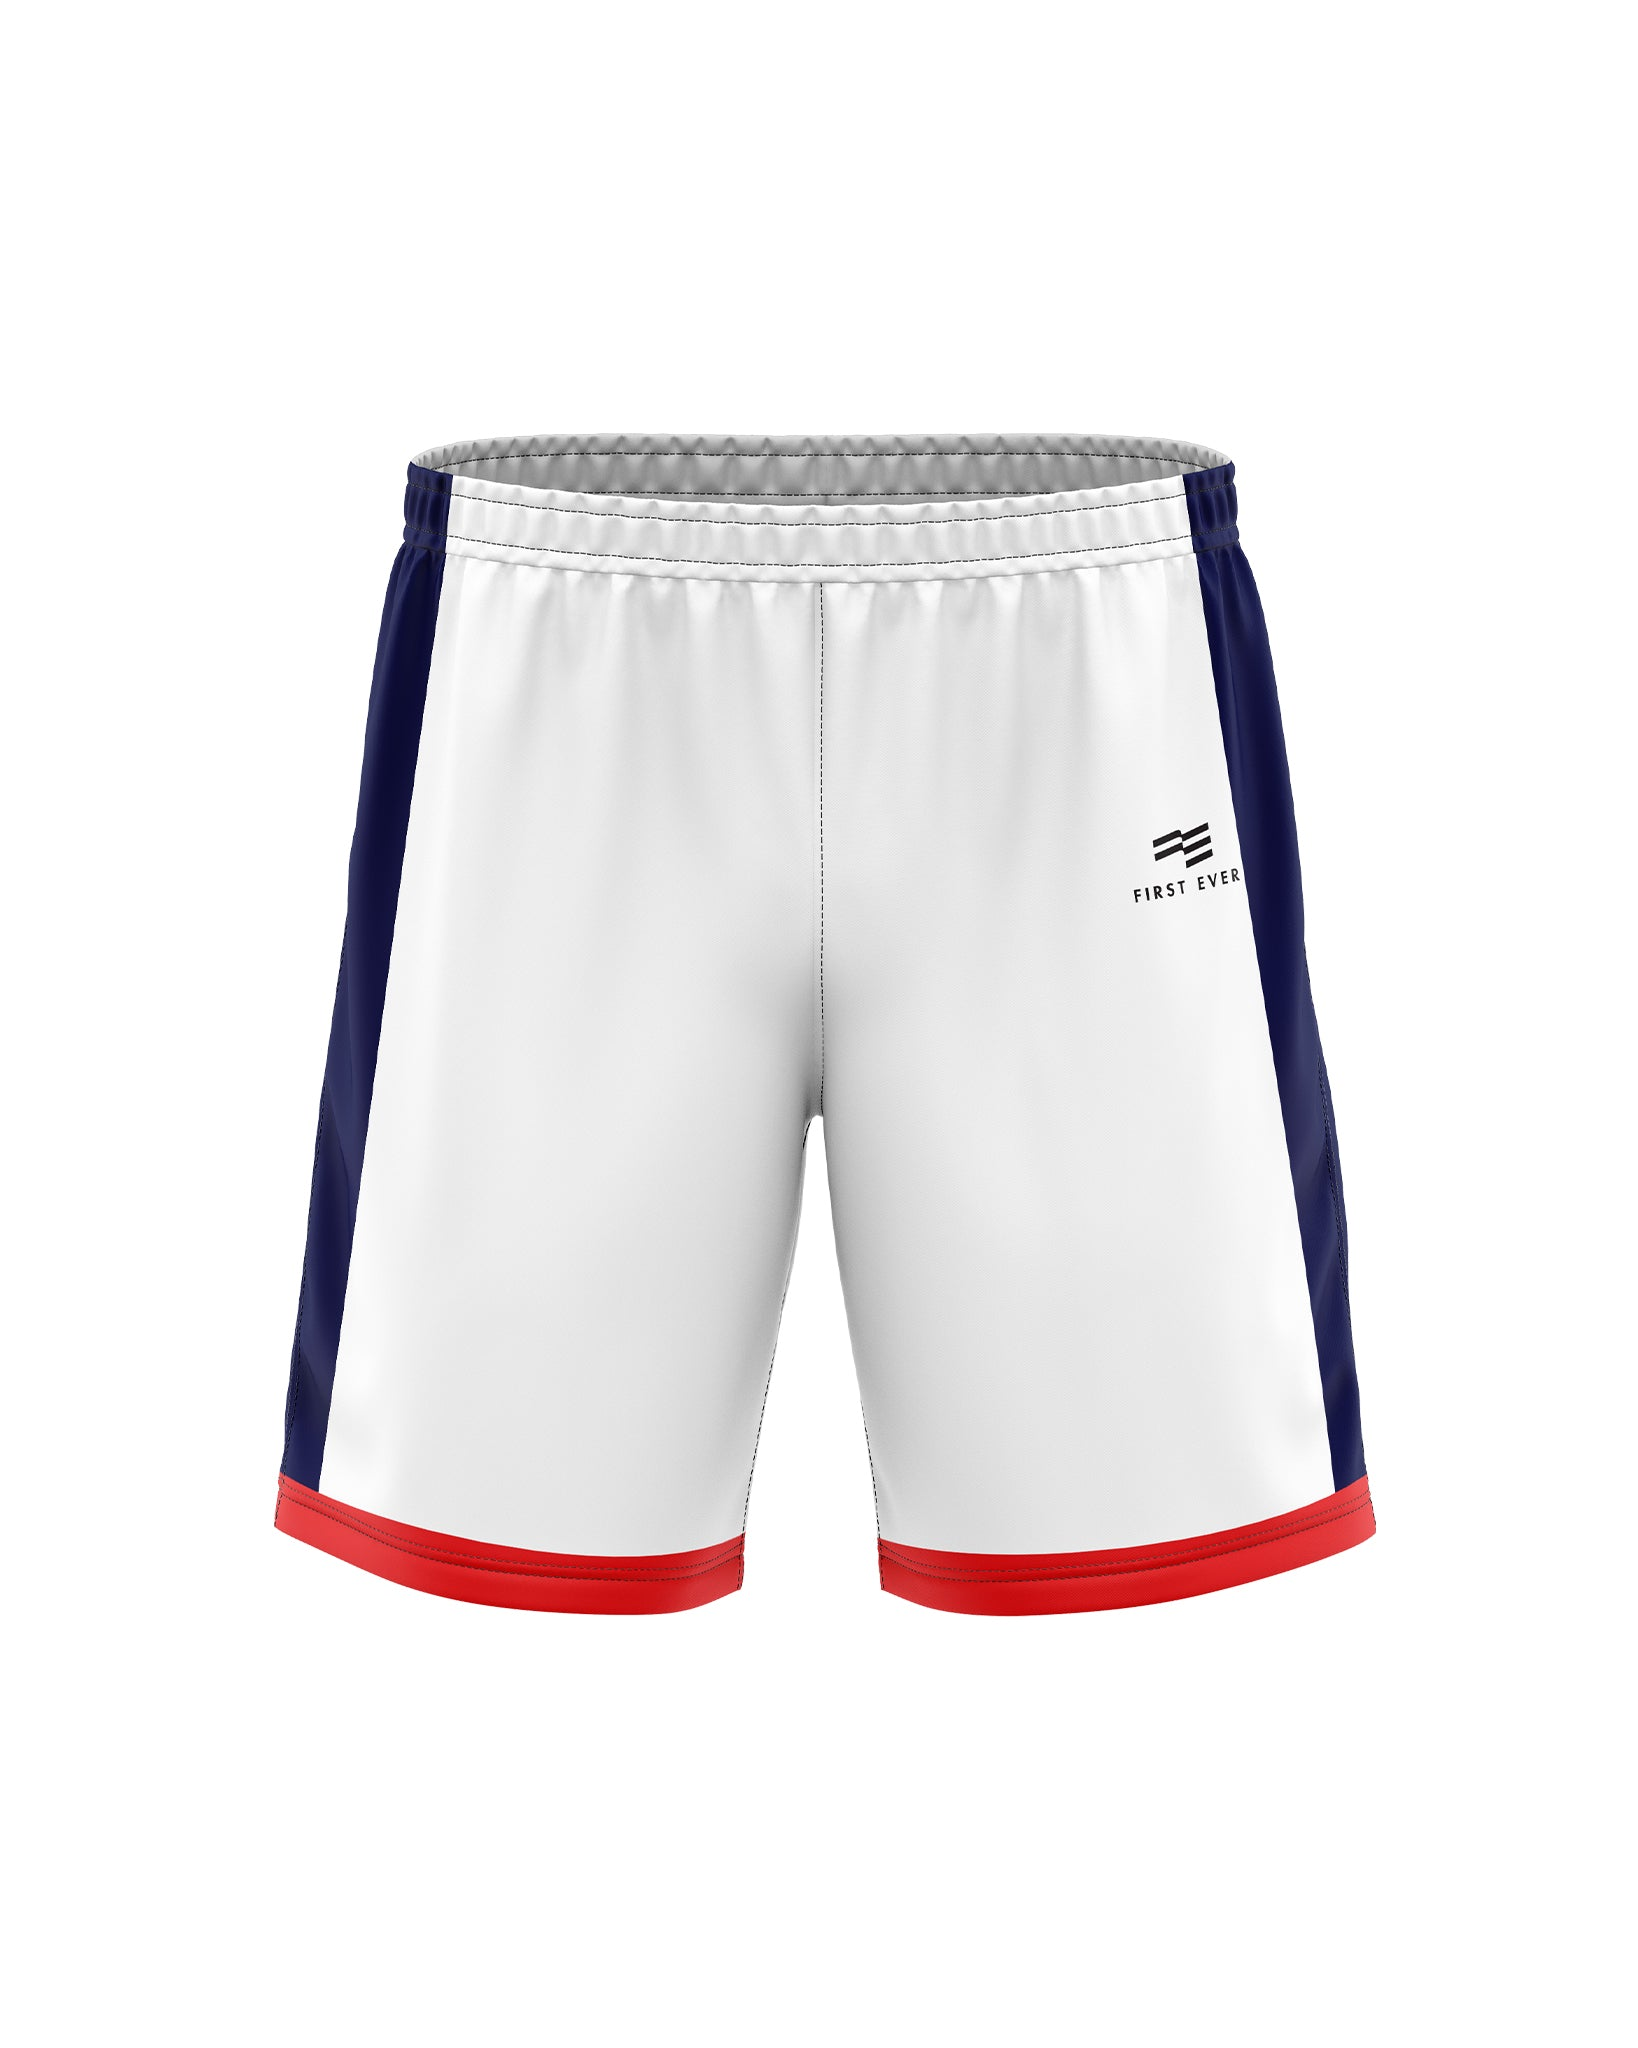 Churches Shorts - Mens